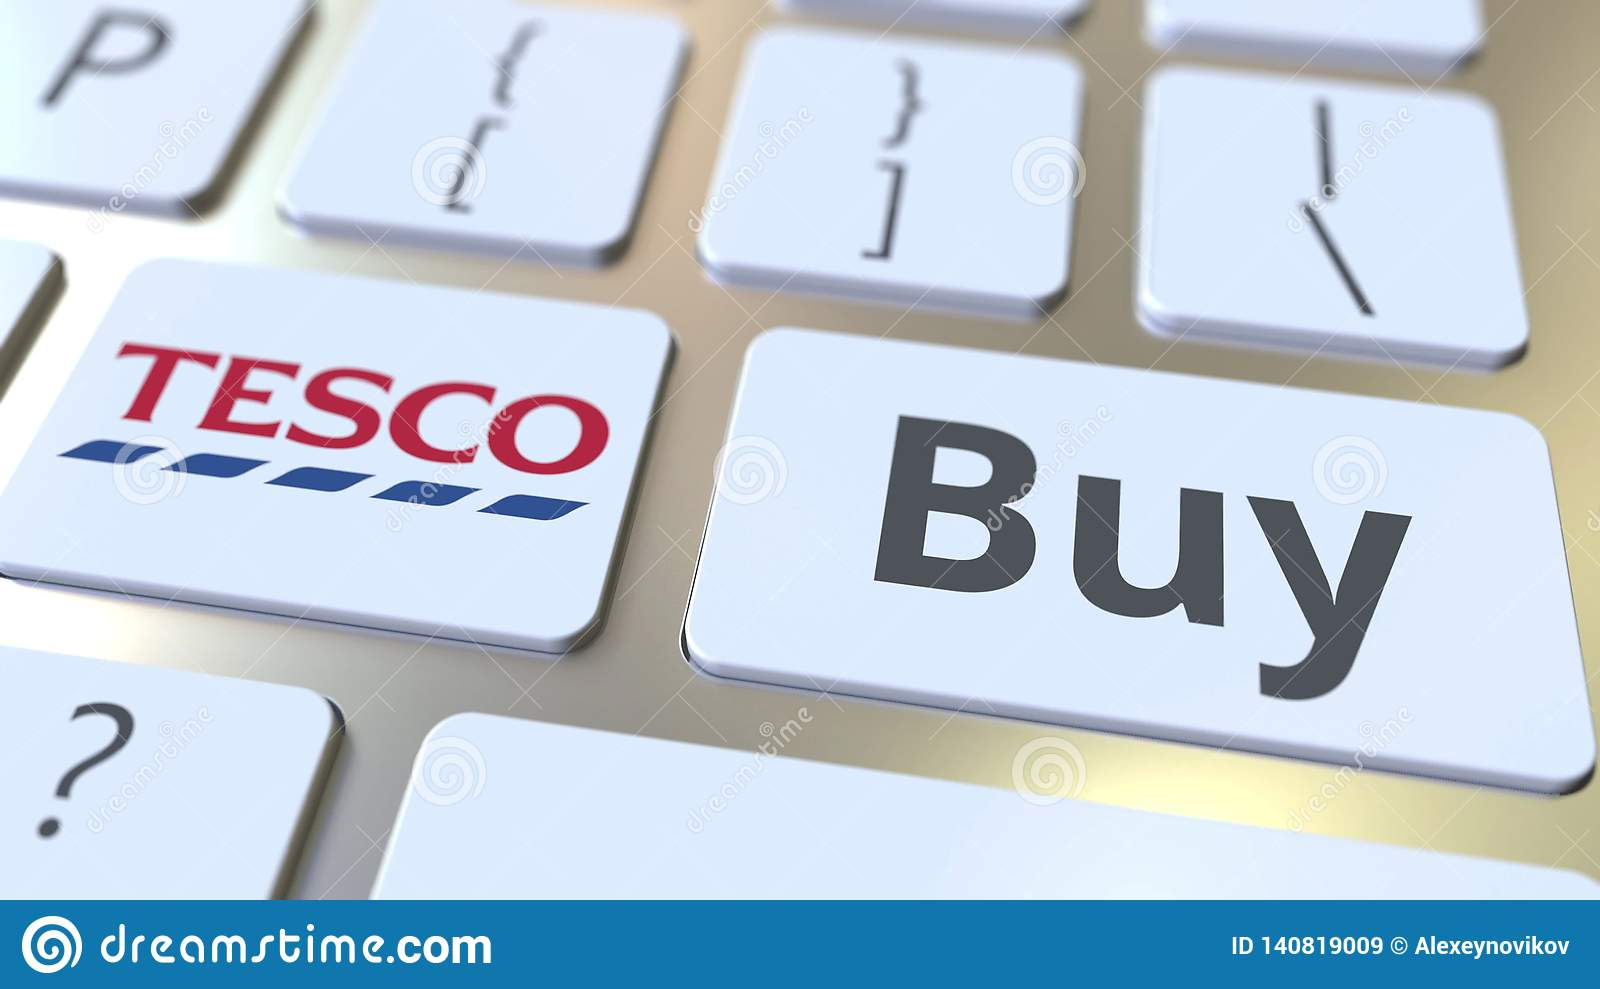 TESCO Company Logo And Buy Text On The Keys Of The Computer